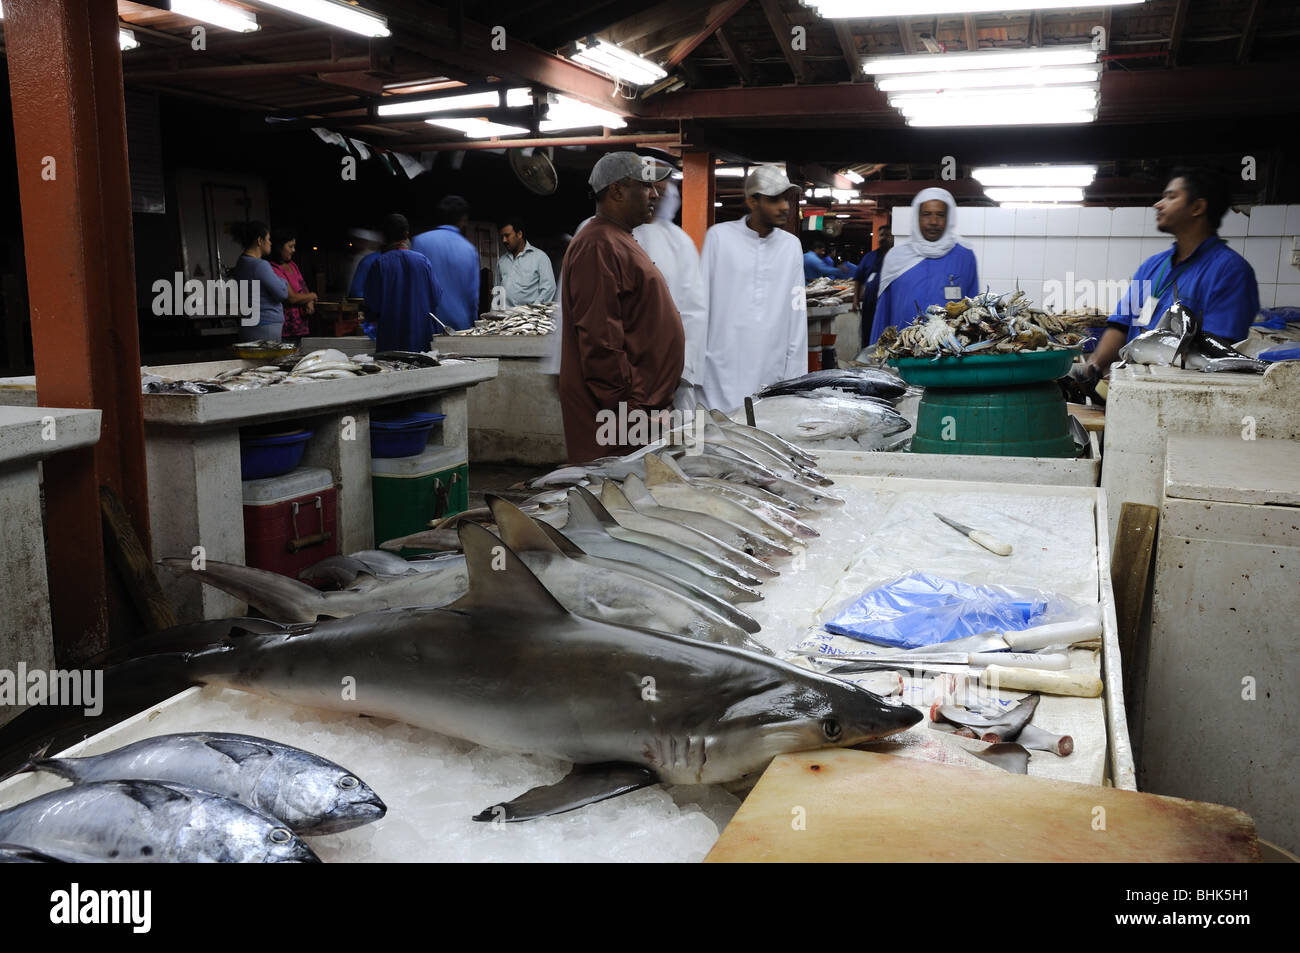 Sharks for sale at fish market in Sharjah, United Arab Emirates - Stock Image